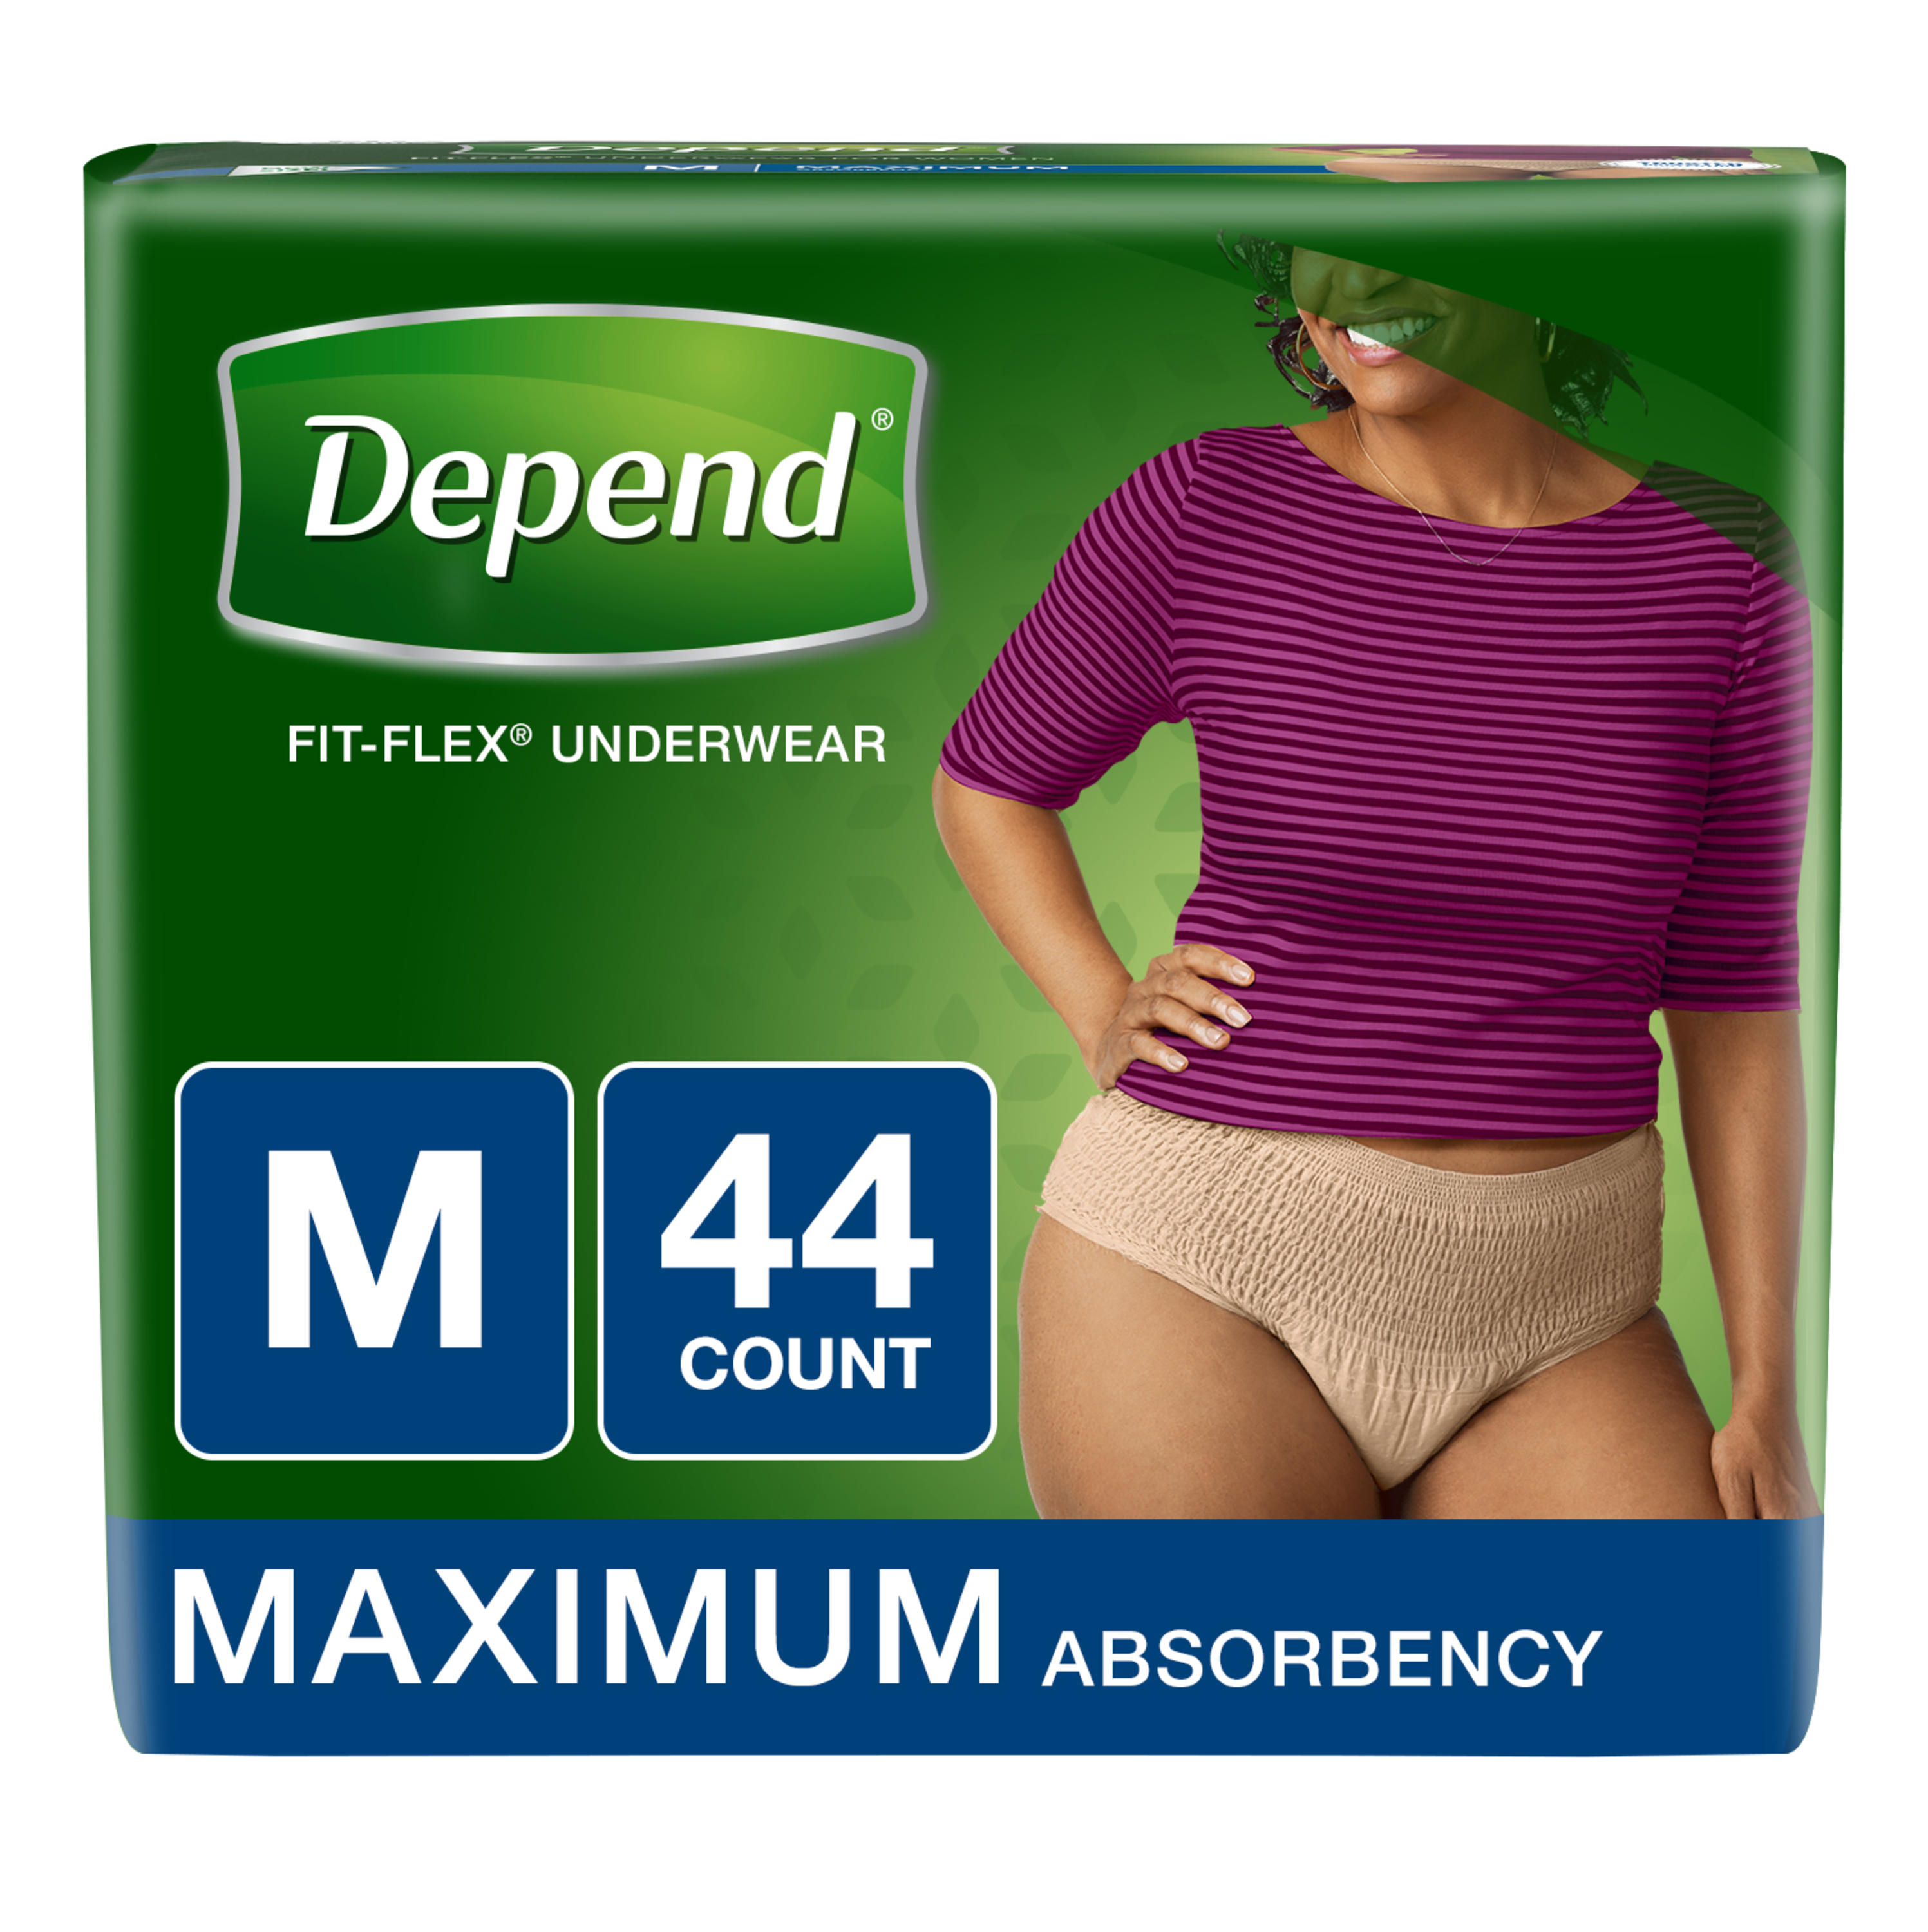 Depend FIT-FLEX Incontinence Underwear for Women, Maximum, M, Tan (Choose Your Count)